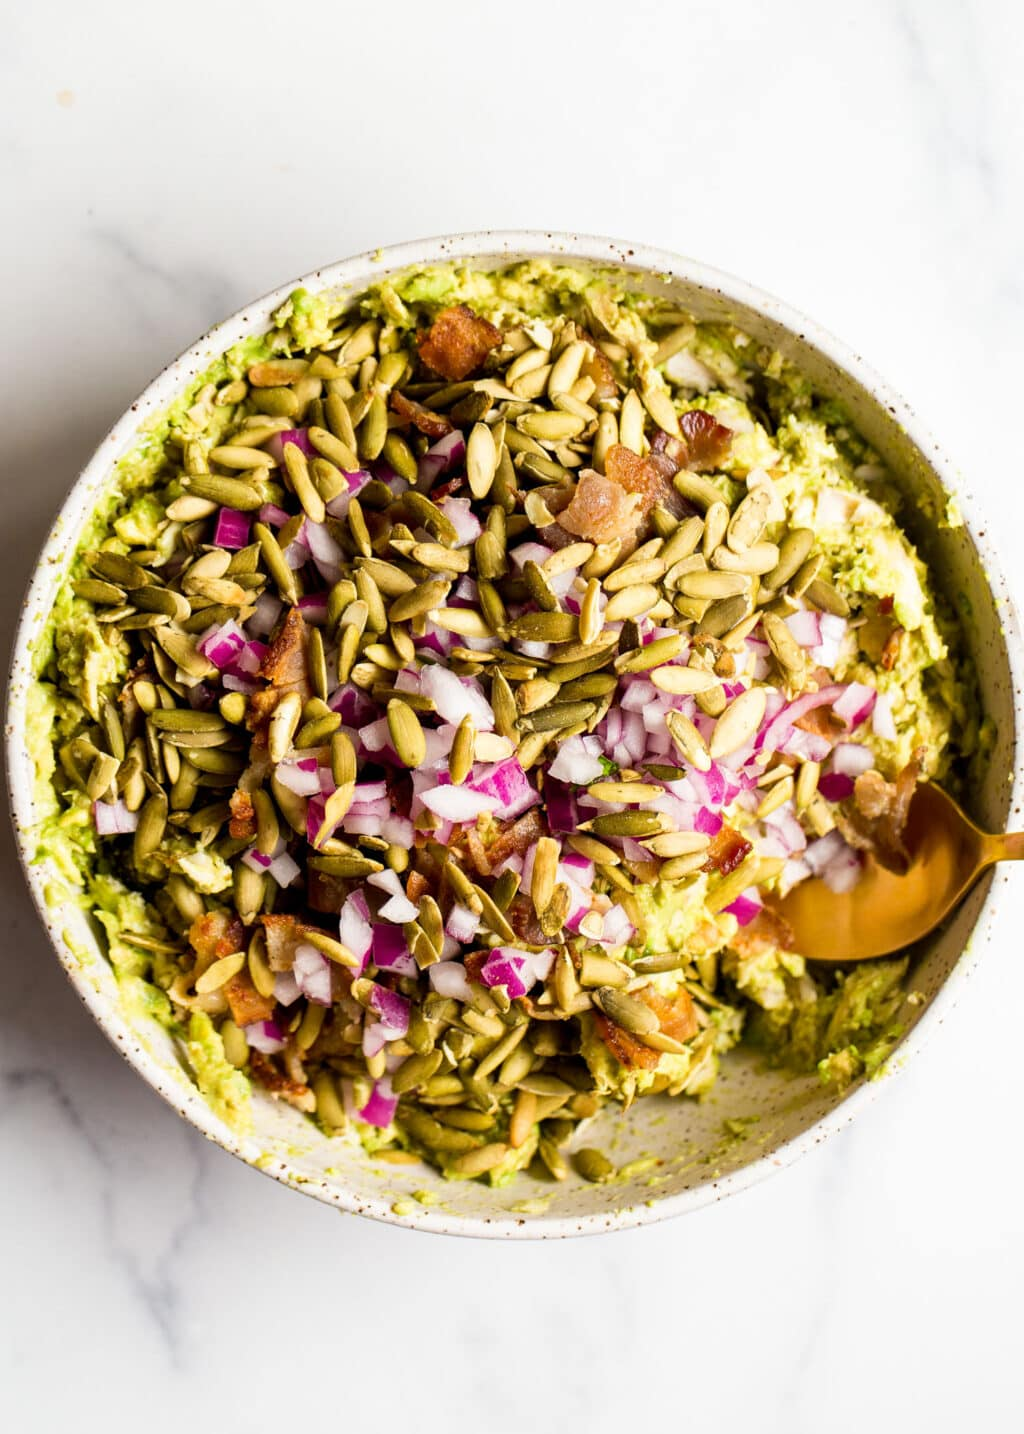 Avocado chicken salad with pumpkin seeds and red onion on top